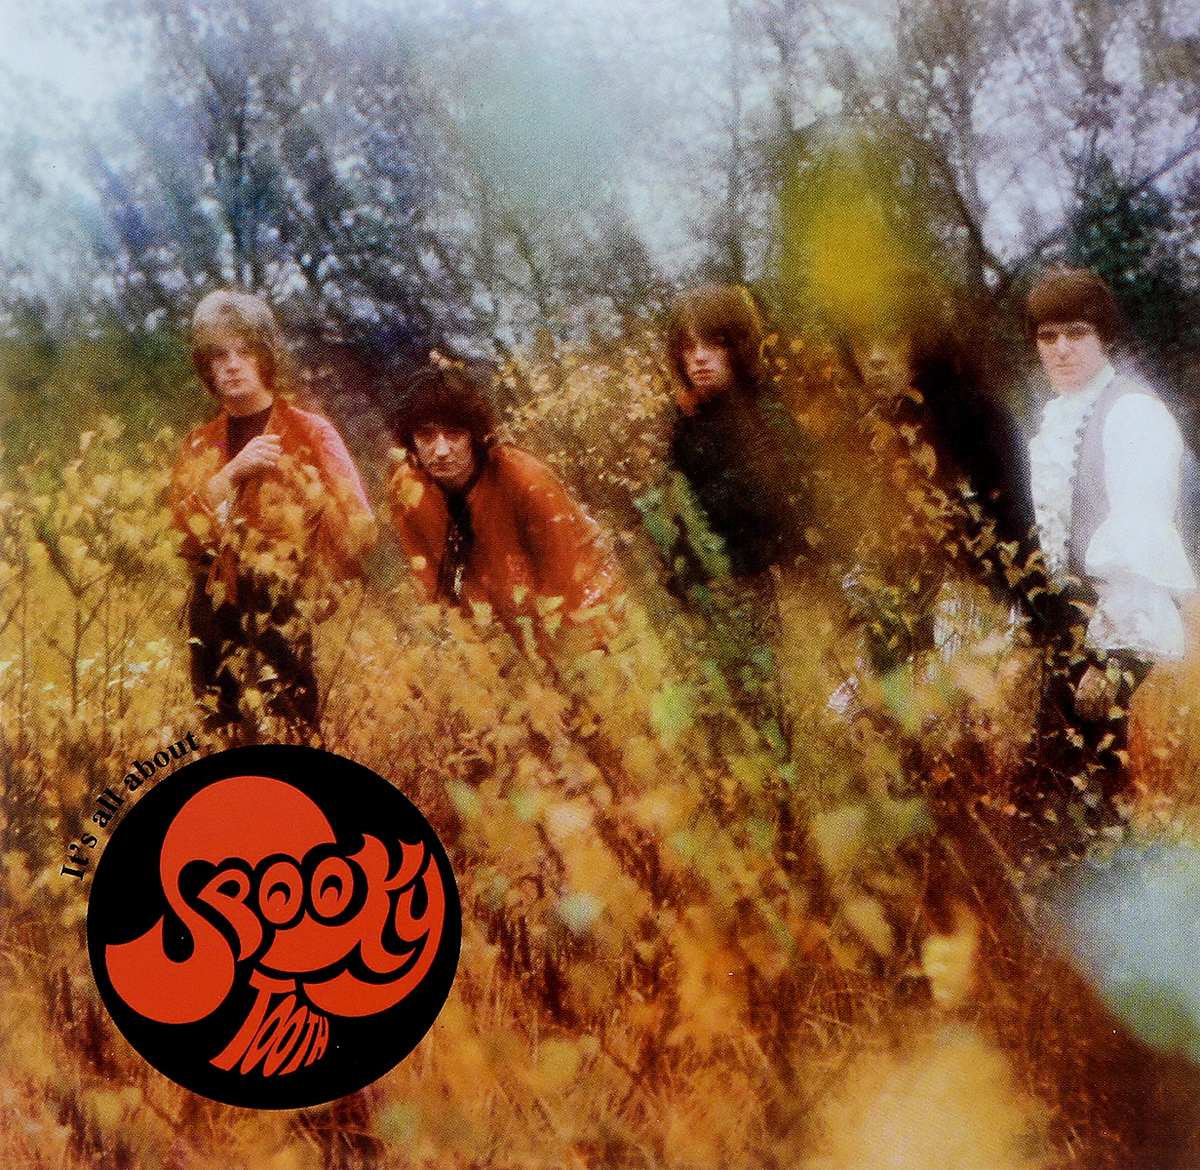 Spooky Tooth Spooky Tooth. It's All About spooky